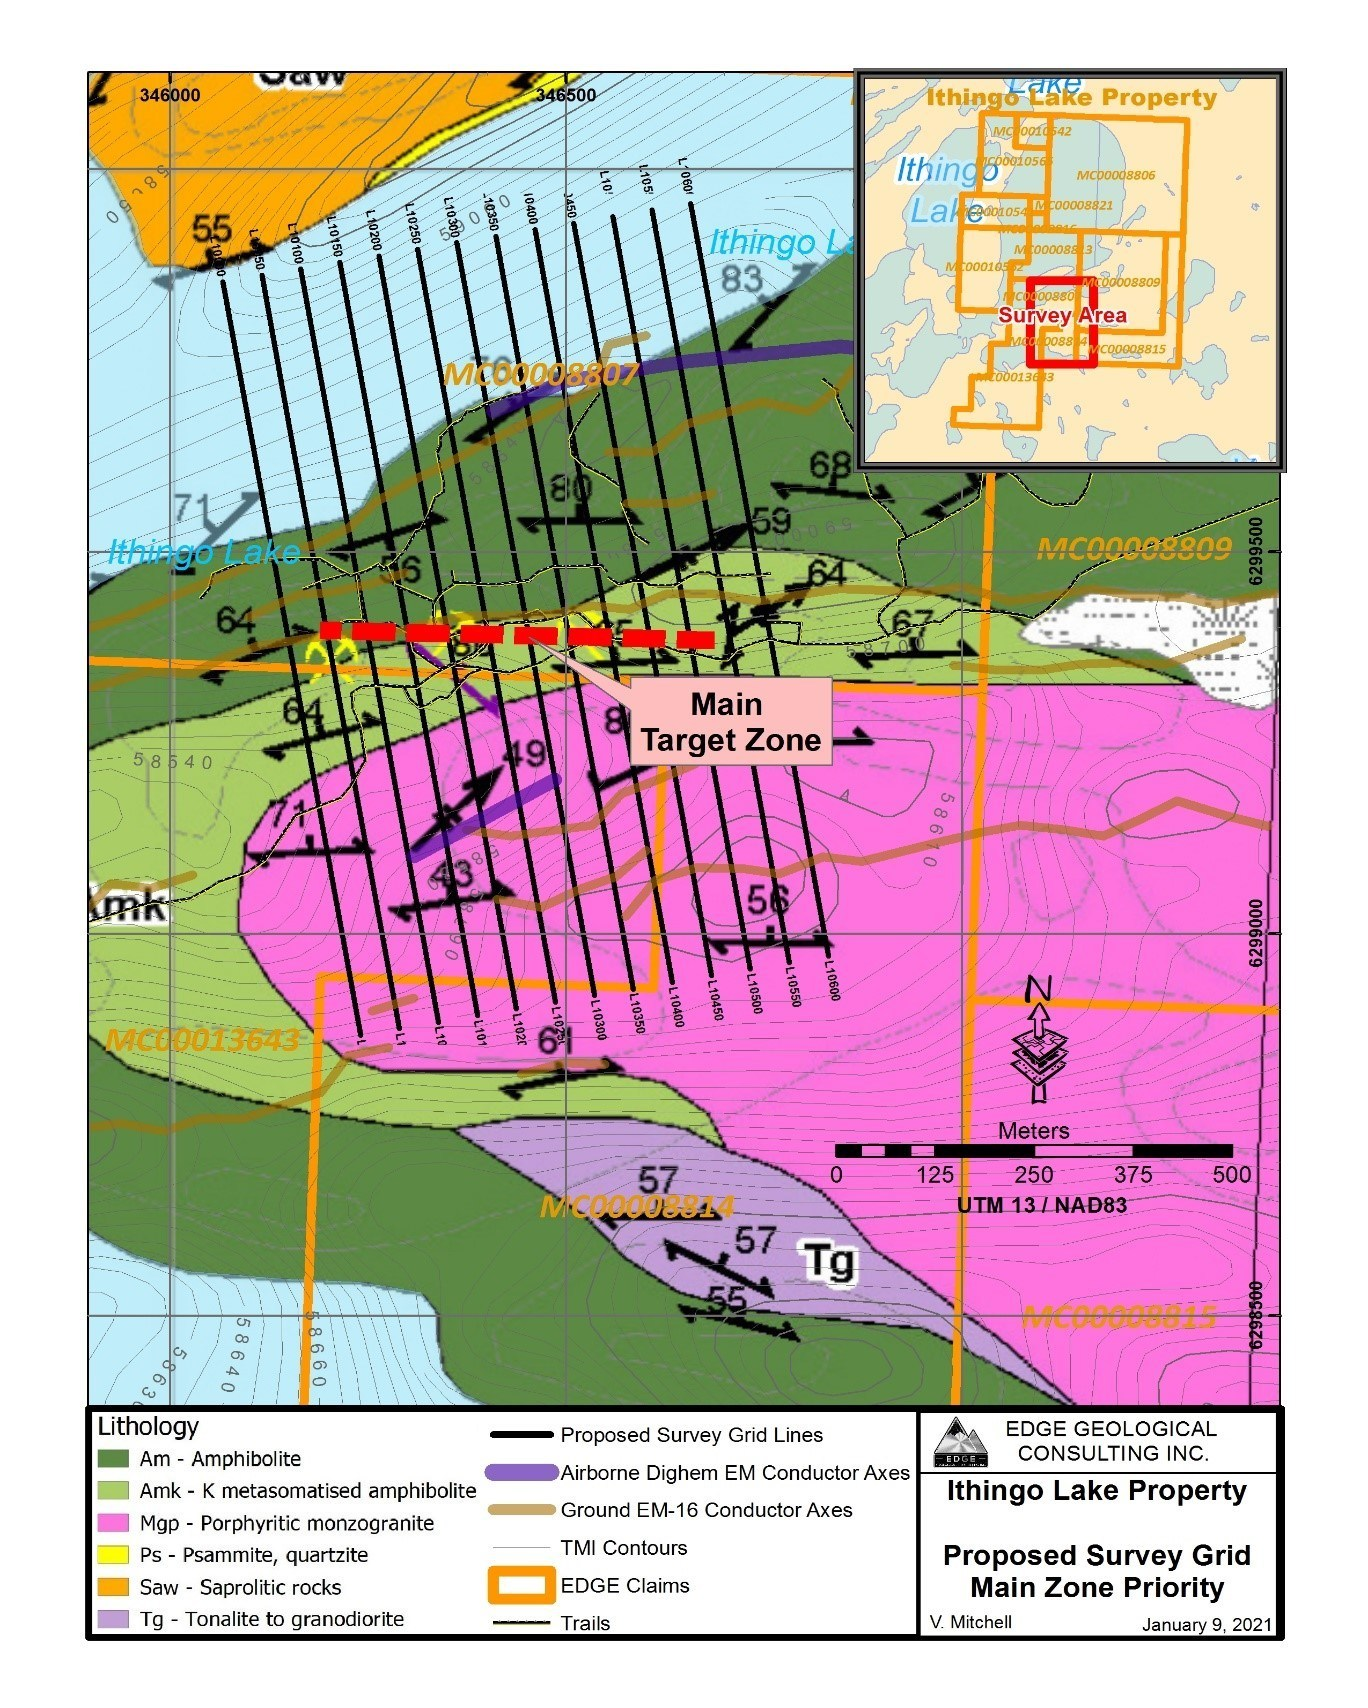 Ithingo Lake Property - Proposed Survey Grid Main Zone Priority (CNW Group/SKRR Exploration Inc.)